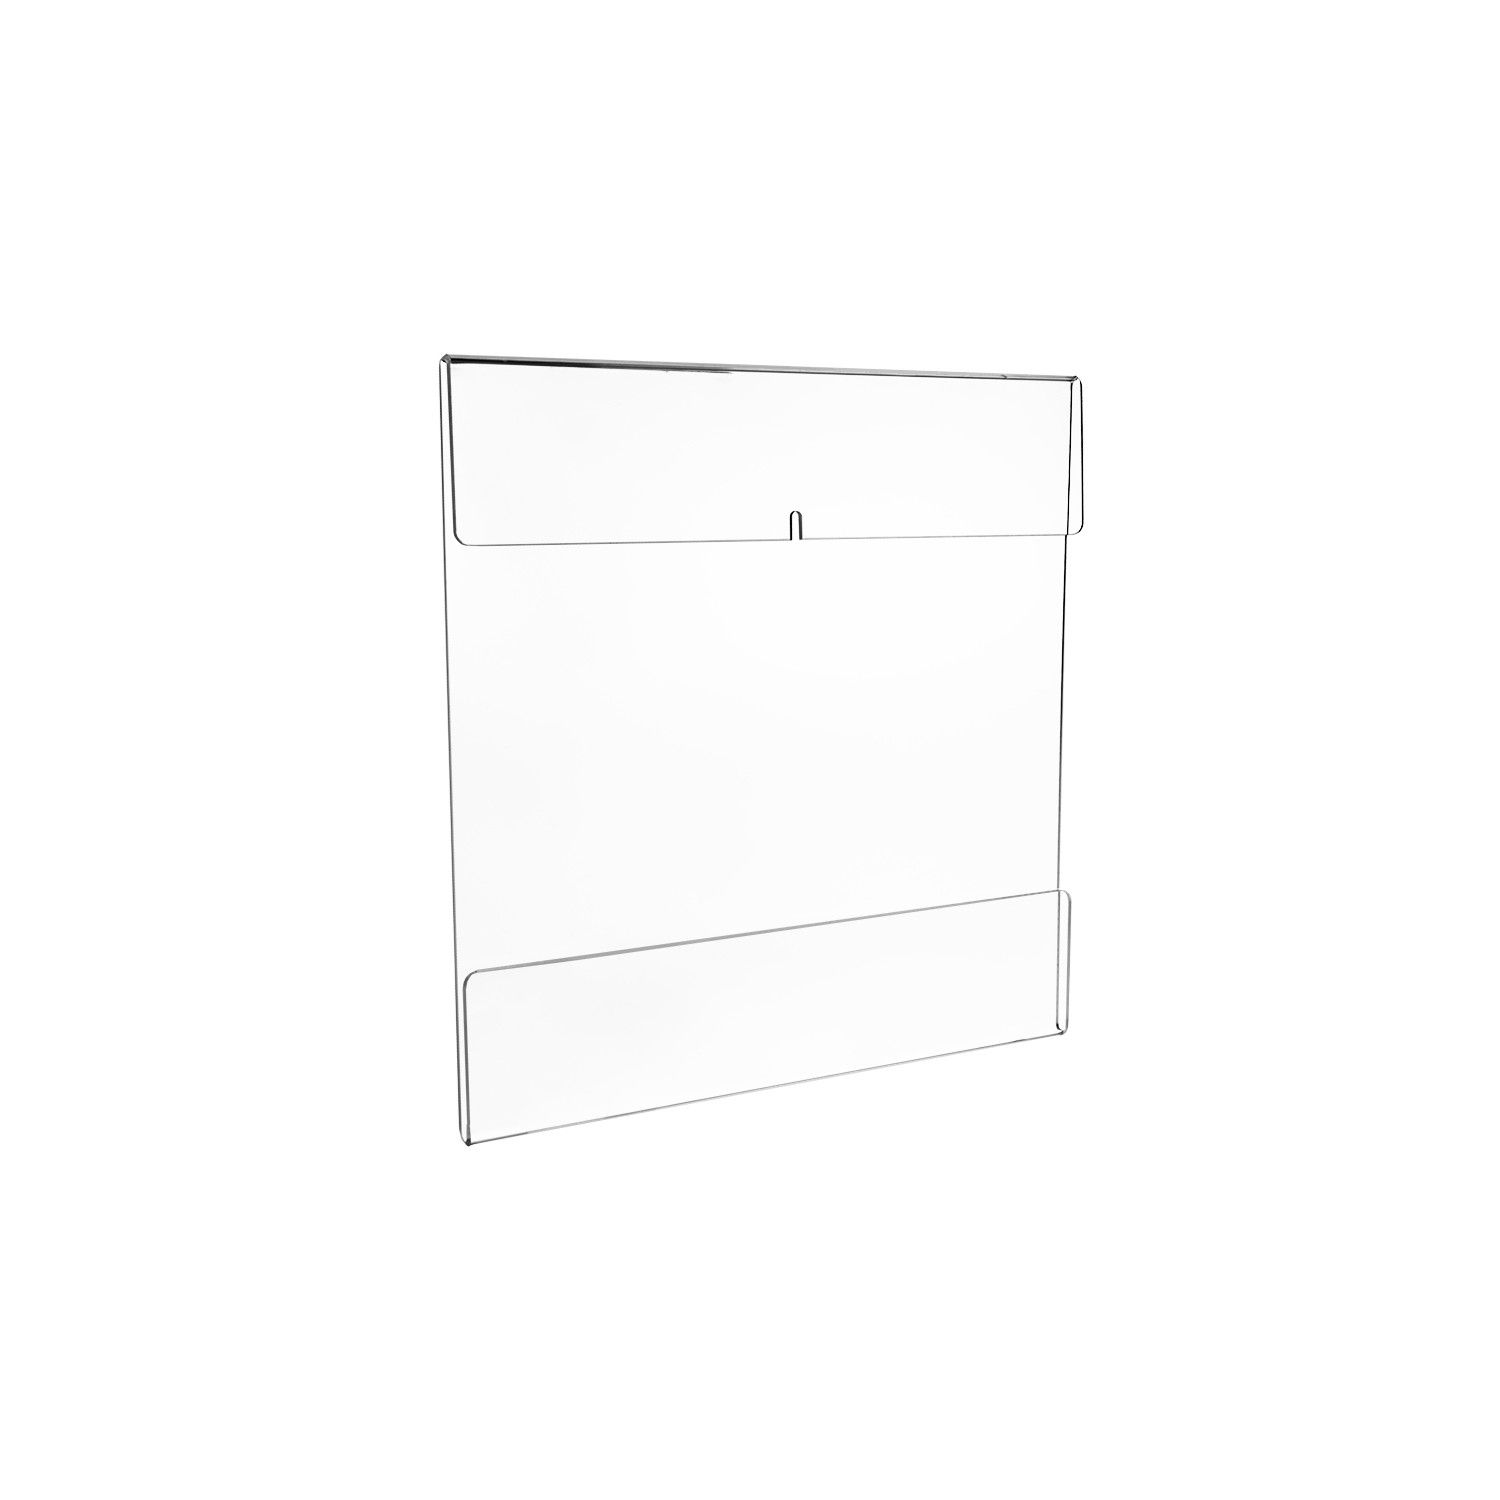 Display And Protect A Single Record Side Loading With Hidden Nail Notch For Wall Mounting Change Out Records Effortlessl Record Sleeves Records Clear Acrylic